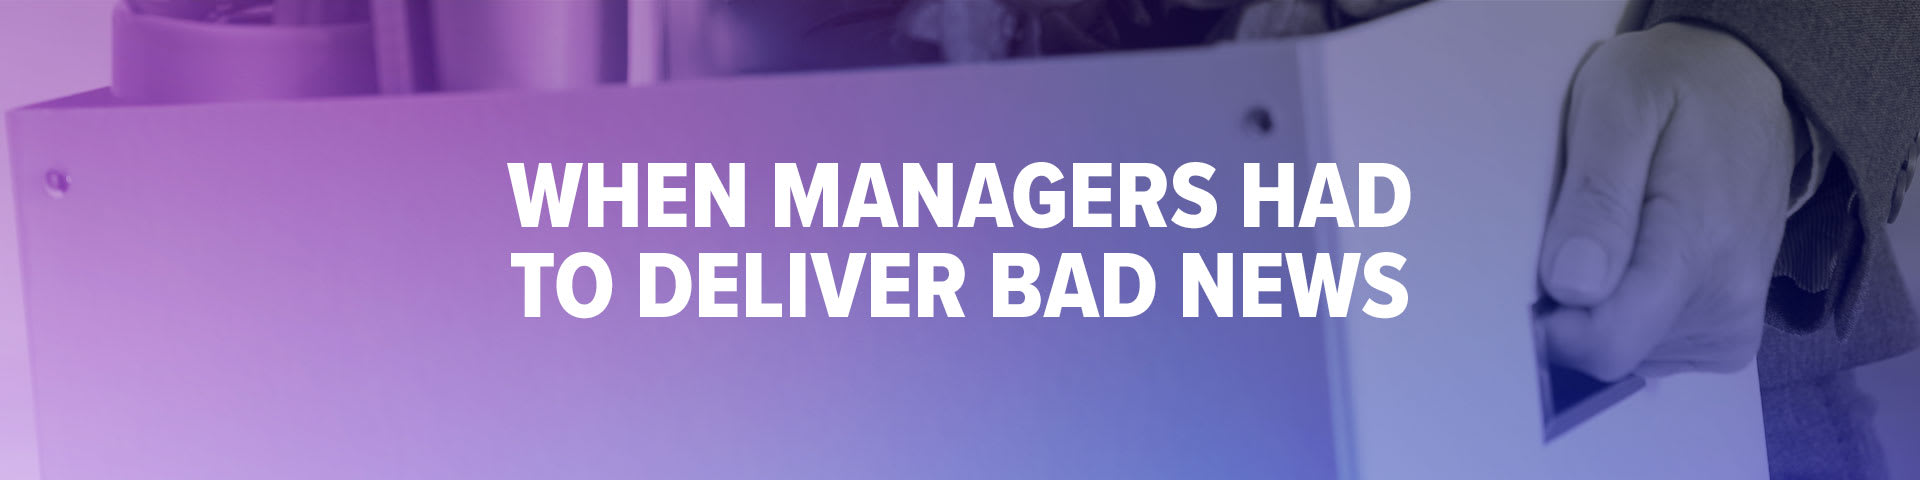 When Managers Had to Deliver Bad News